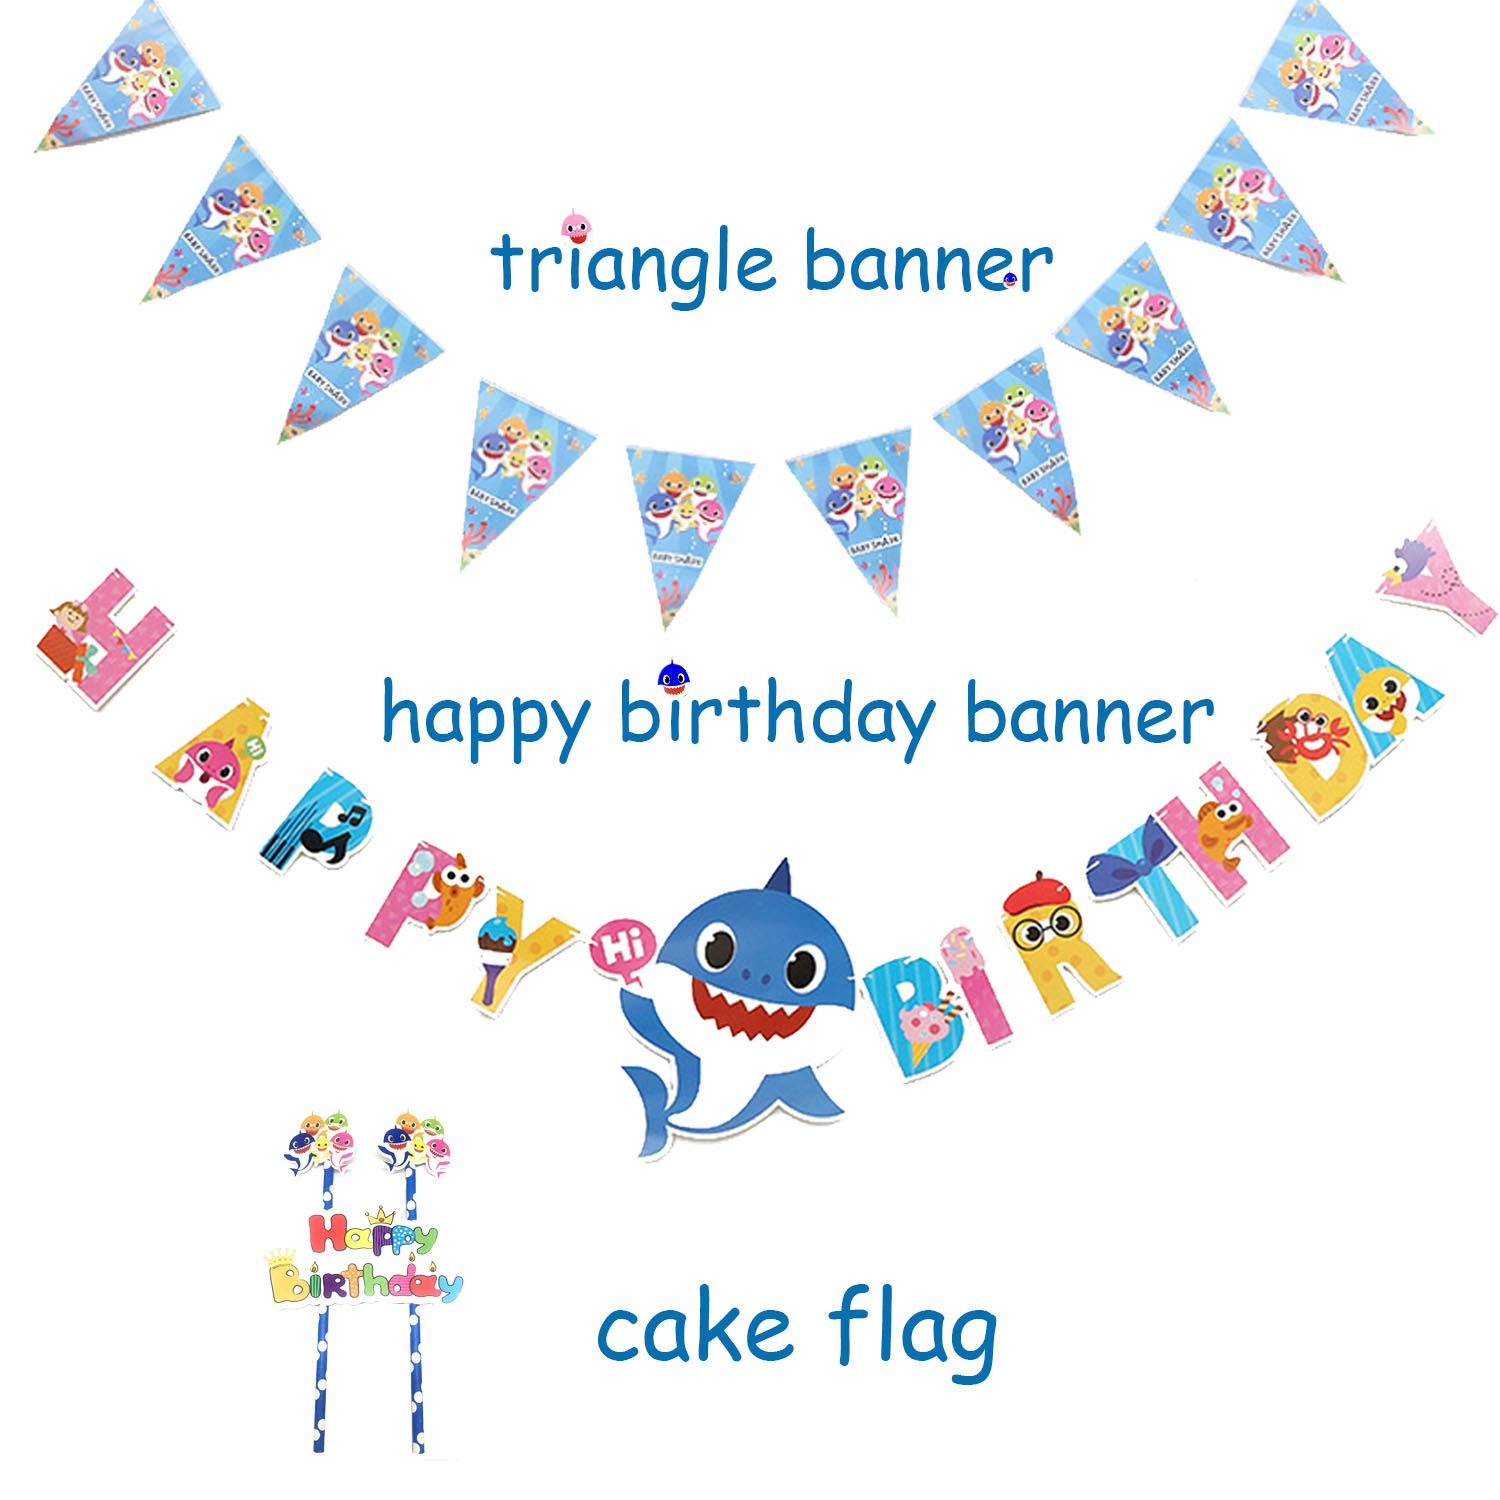 Baby Shark Party Supplies Set - 109 Pcs Baby Shark Themed Birthday Decorations Includes Disposable Tableware Kit Blowing Dragon Paper Hat Gift Bag and Banner - Serves 10 Guest by AiParty (Image #5)